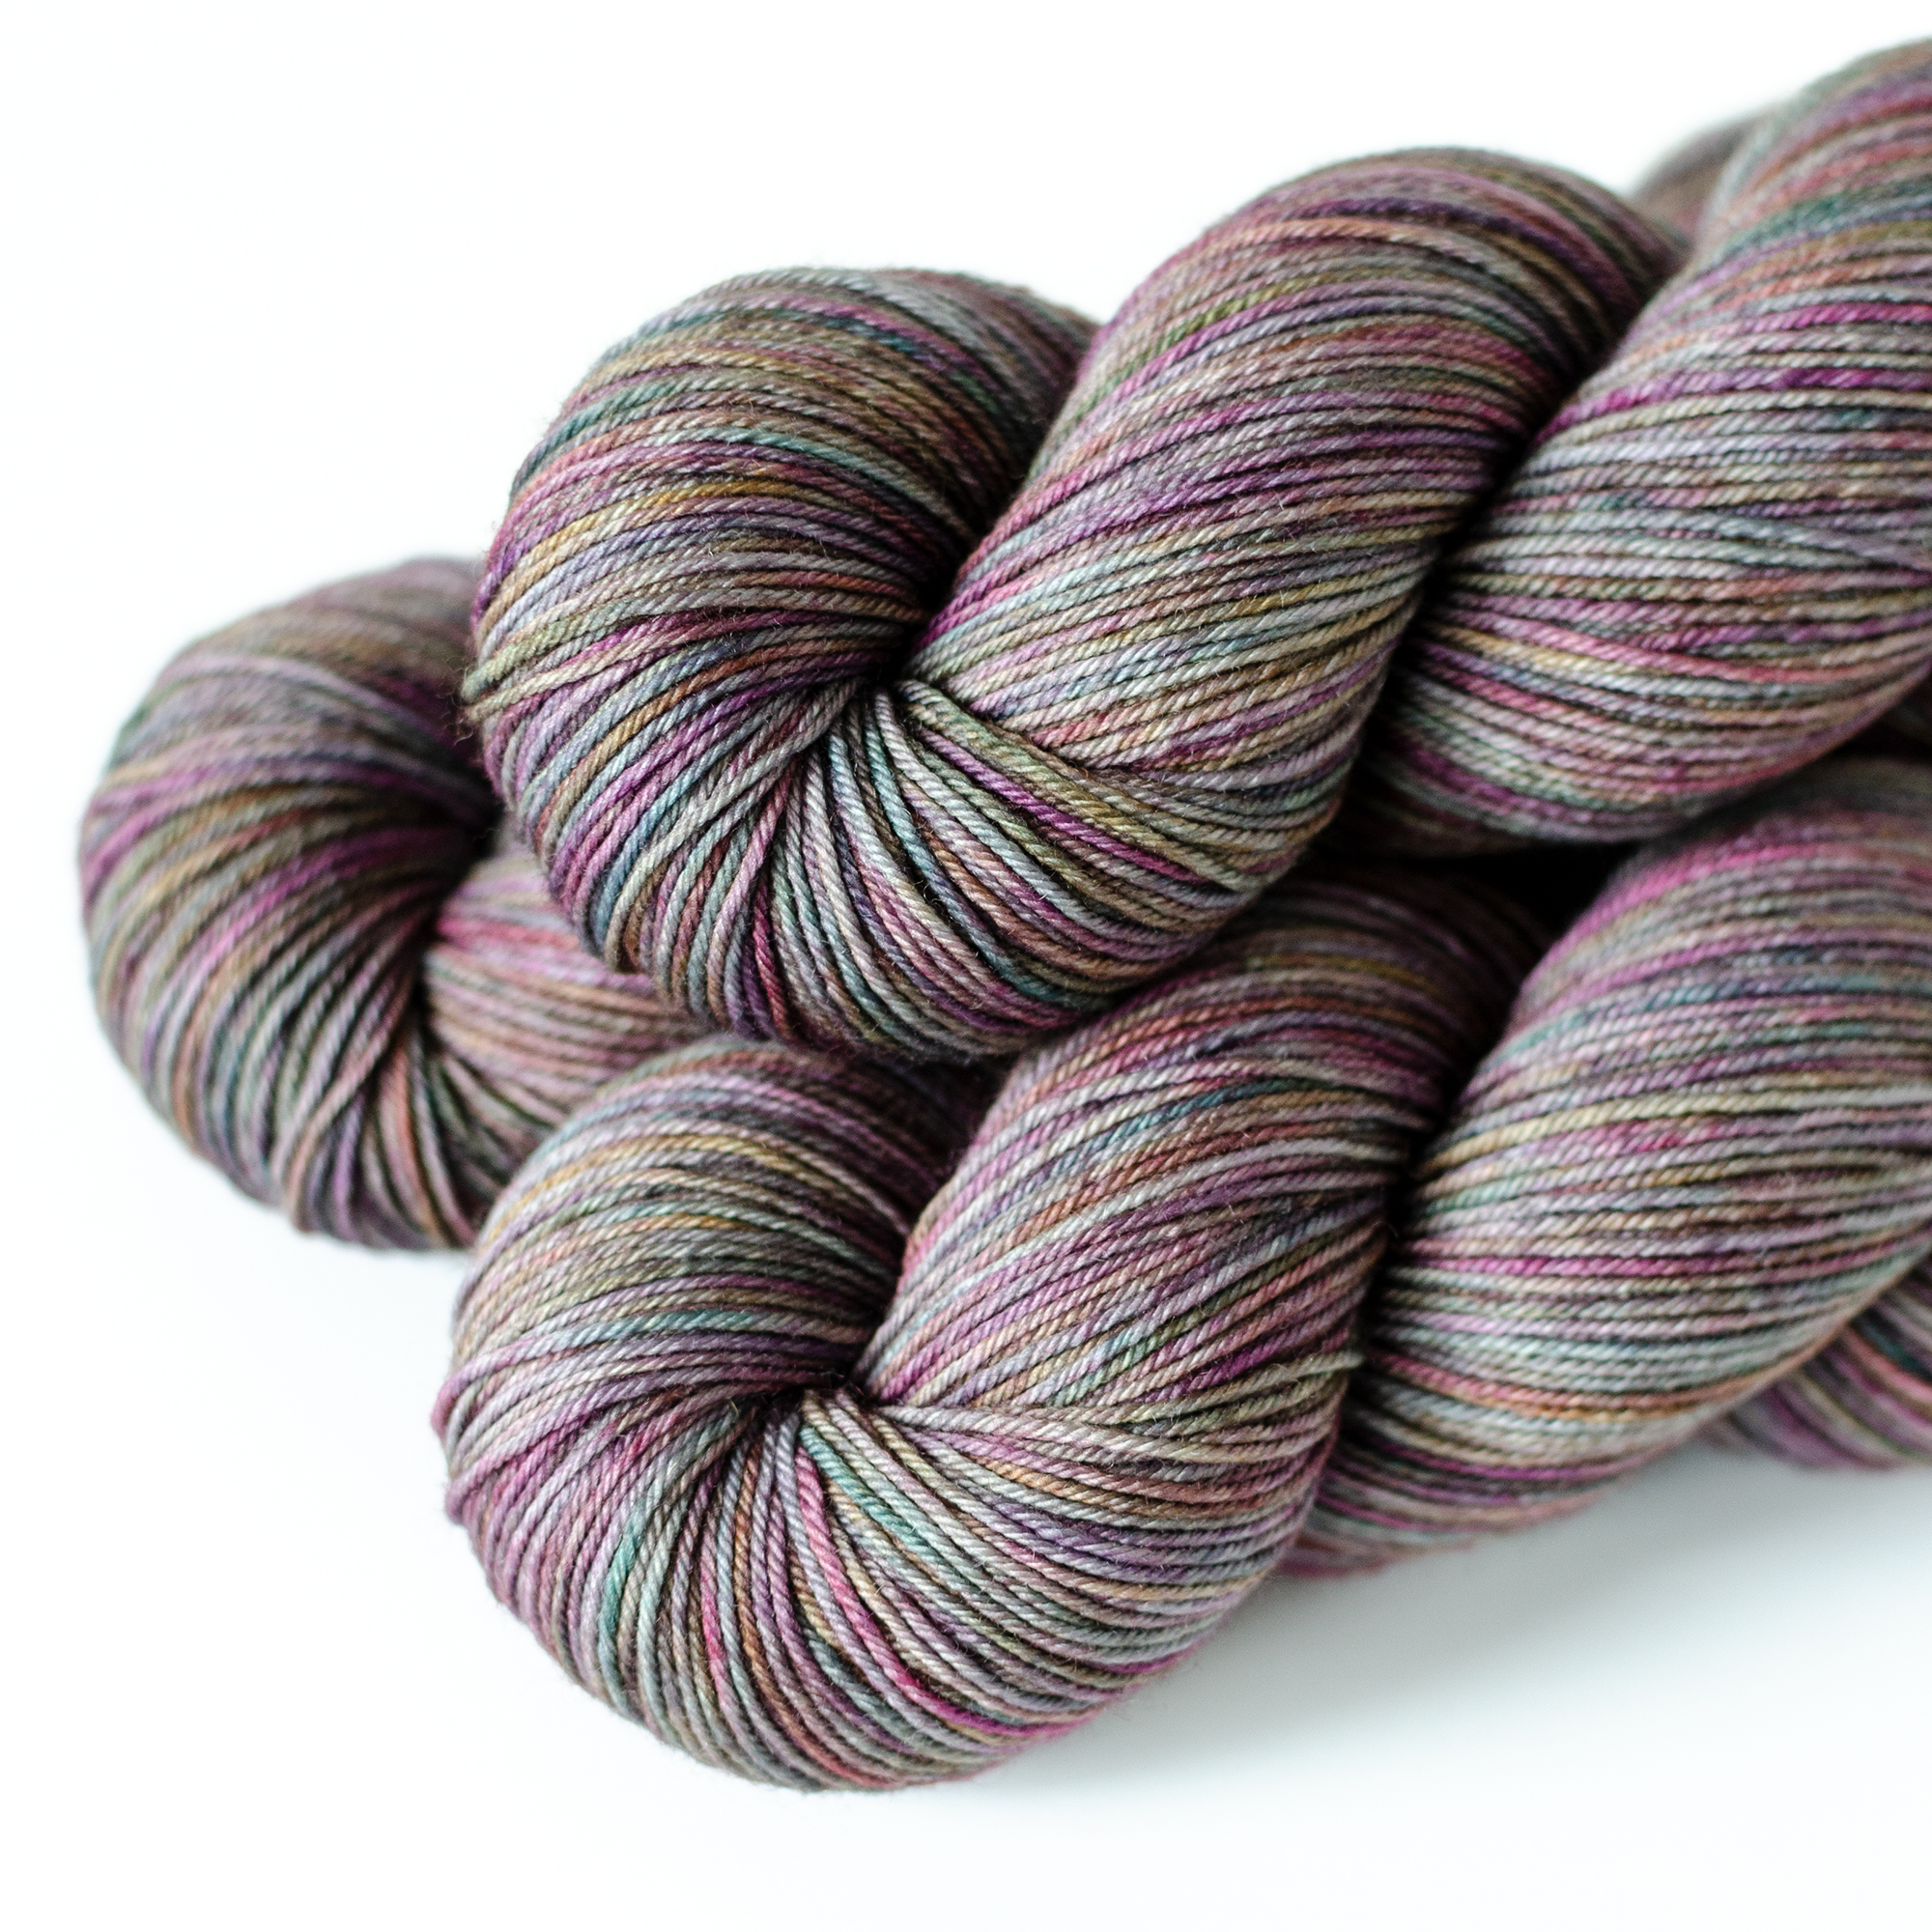 SW Merino Fingering - $25  100% Superwash Merino Wool  4 plies  437 yds / 400 m  100 grams  Fingering Weight  US 1-5 / 2.25-3.75 mm  Hand wash or machine wash gentle cycle / dry flat  This is a soft, smooth, firmly twisted yarn.